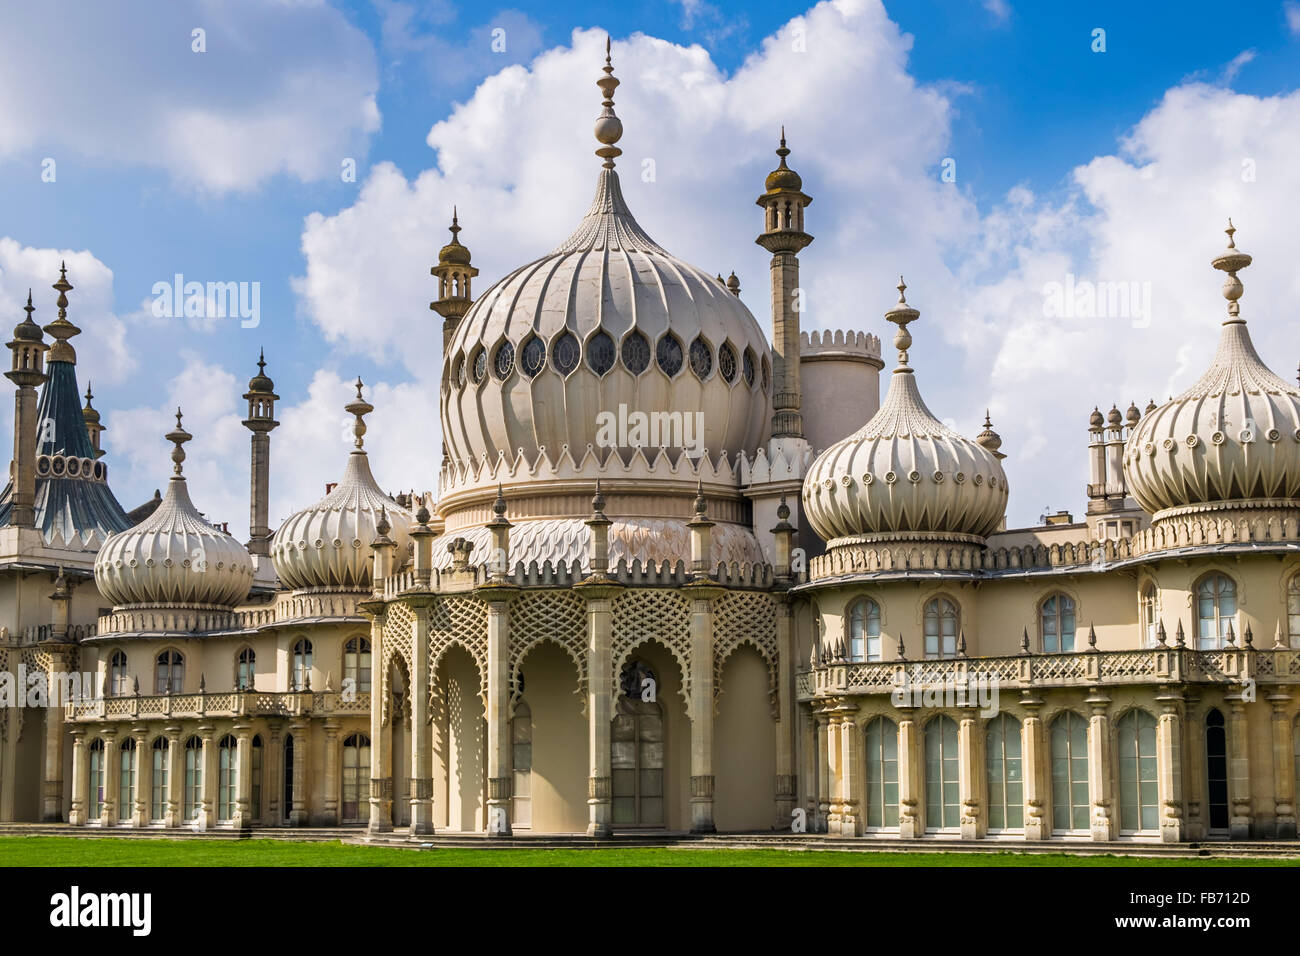 Brighton Pavilion, le coastal retreat de Prince George, le Prince Régent, dans le 18e siècle, Brighton Photo Stock